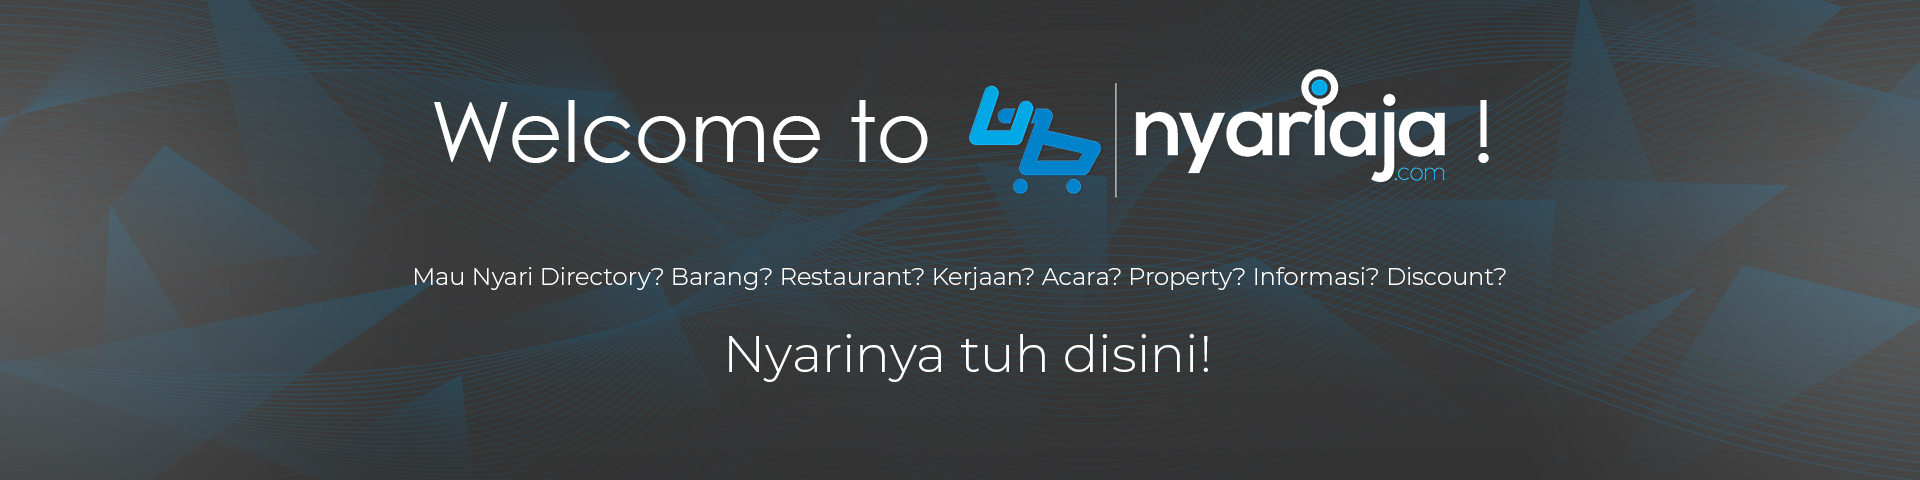 https://nyariaja.com/wp-content/uploads/2018/10/NyariAja-Website-Banner-Main-1920x480-condensed.jpg